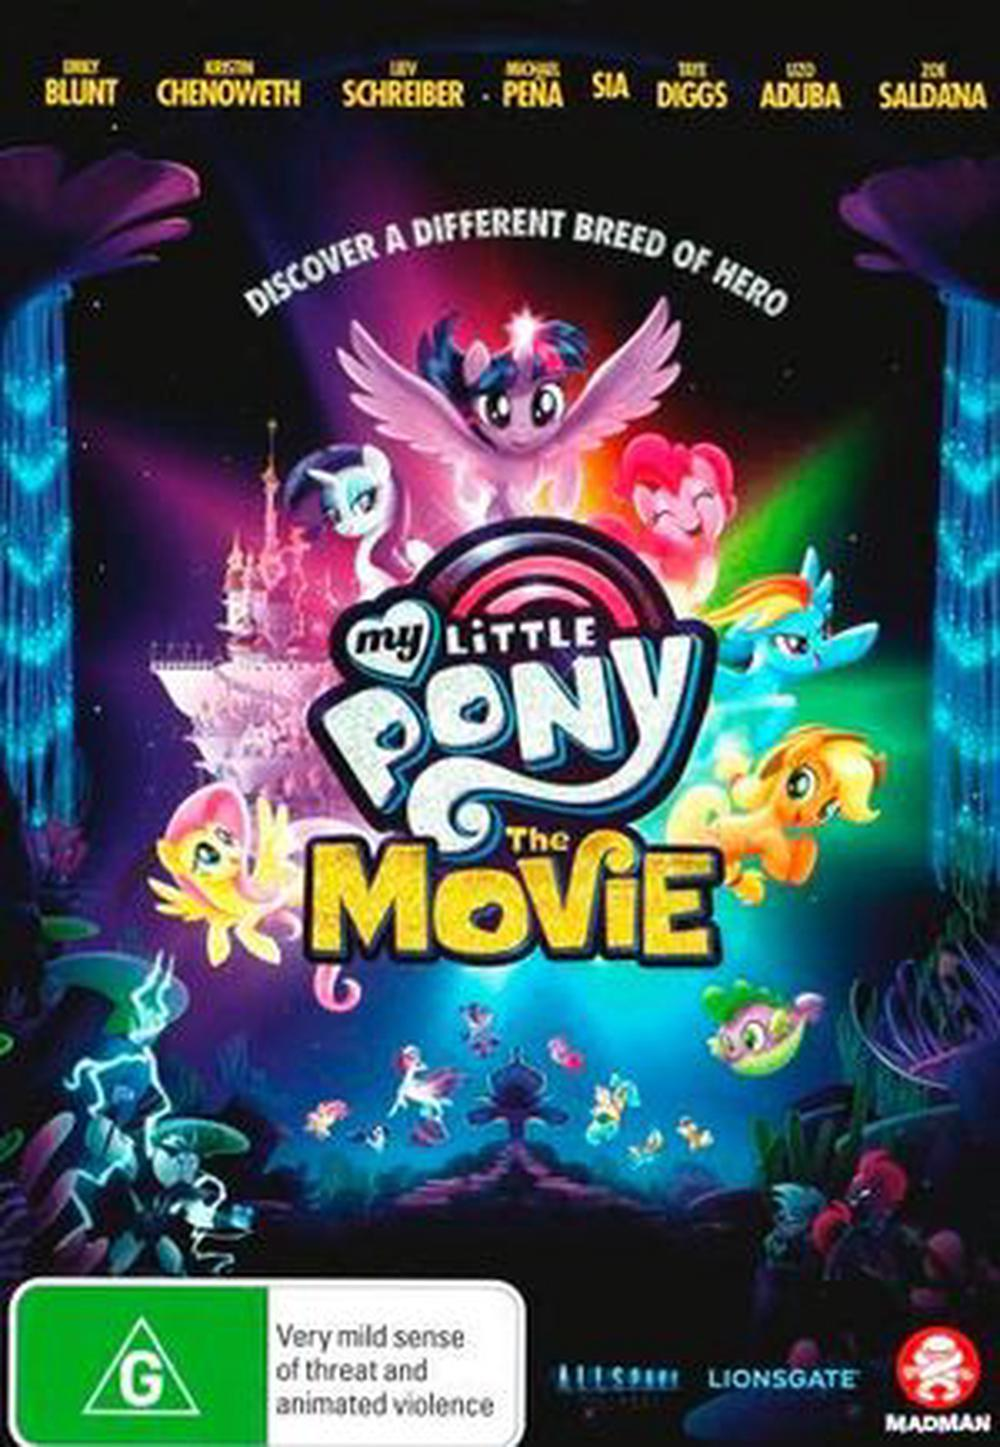 My Little Pony - Movie, The